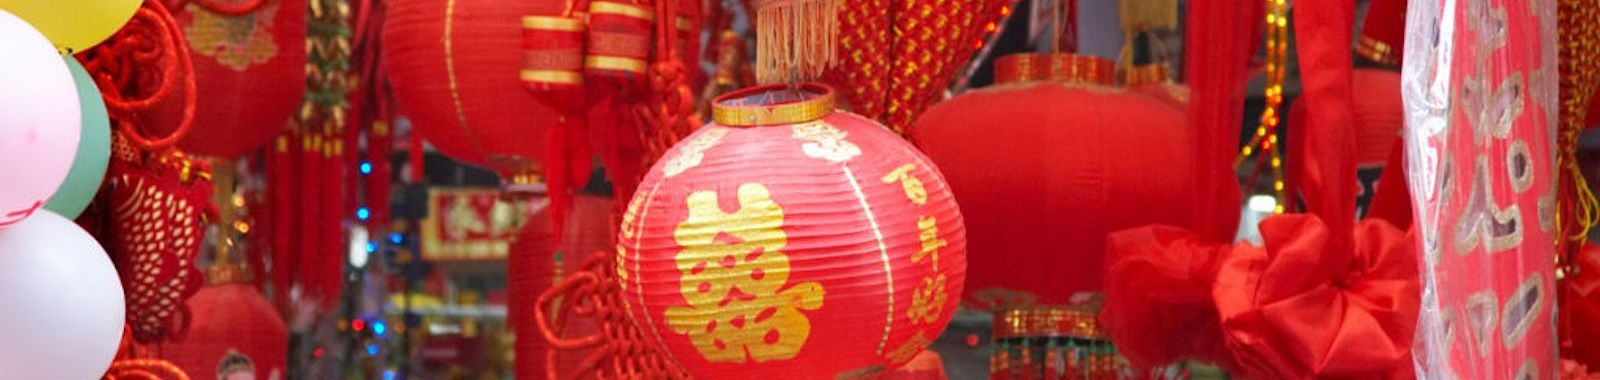 China_hotels_lanterns_eye